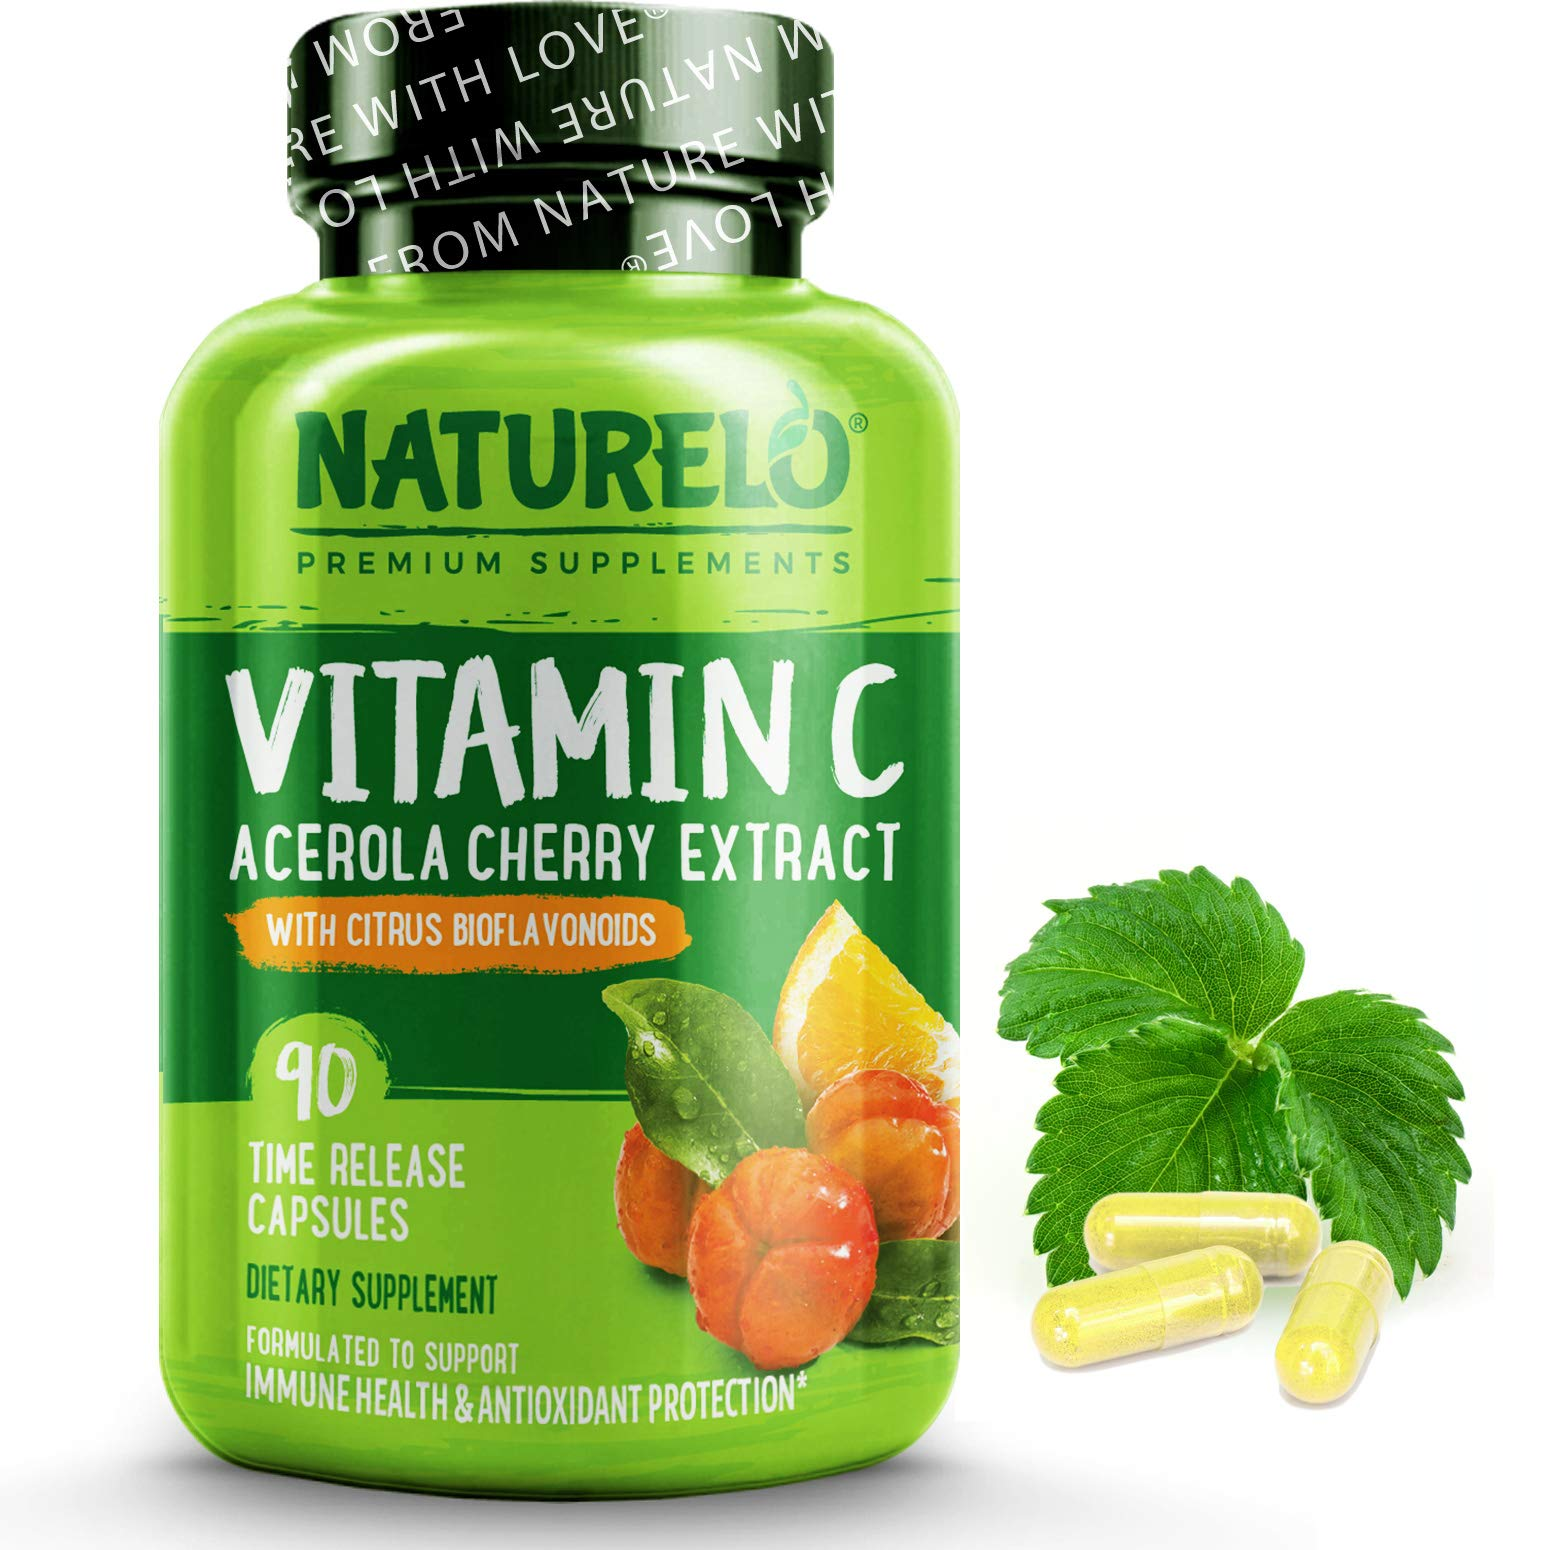 NATURELO Vitamin C with Organic Acerola Cherry Extract and Citrus Bioflavonoids - Vegan Supplement - Immune Support - 500 mg VIT C per Cap - Time Release - Non-GMO - 90 Capsules